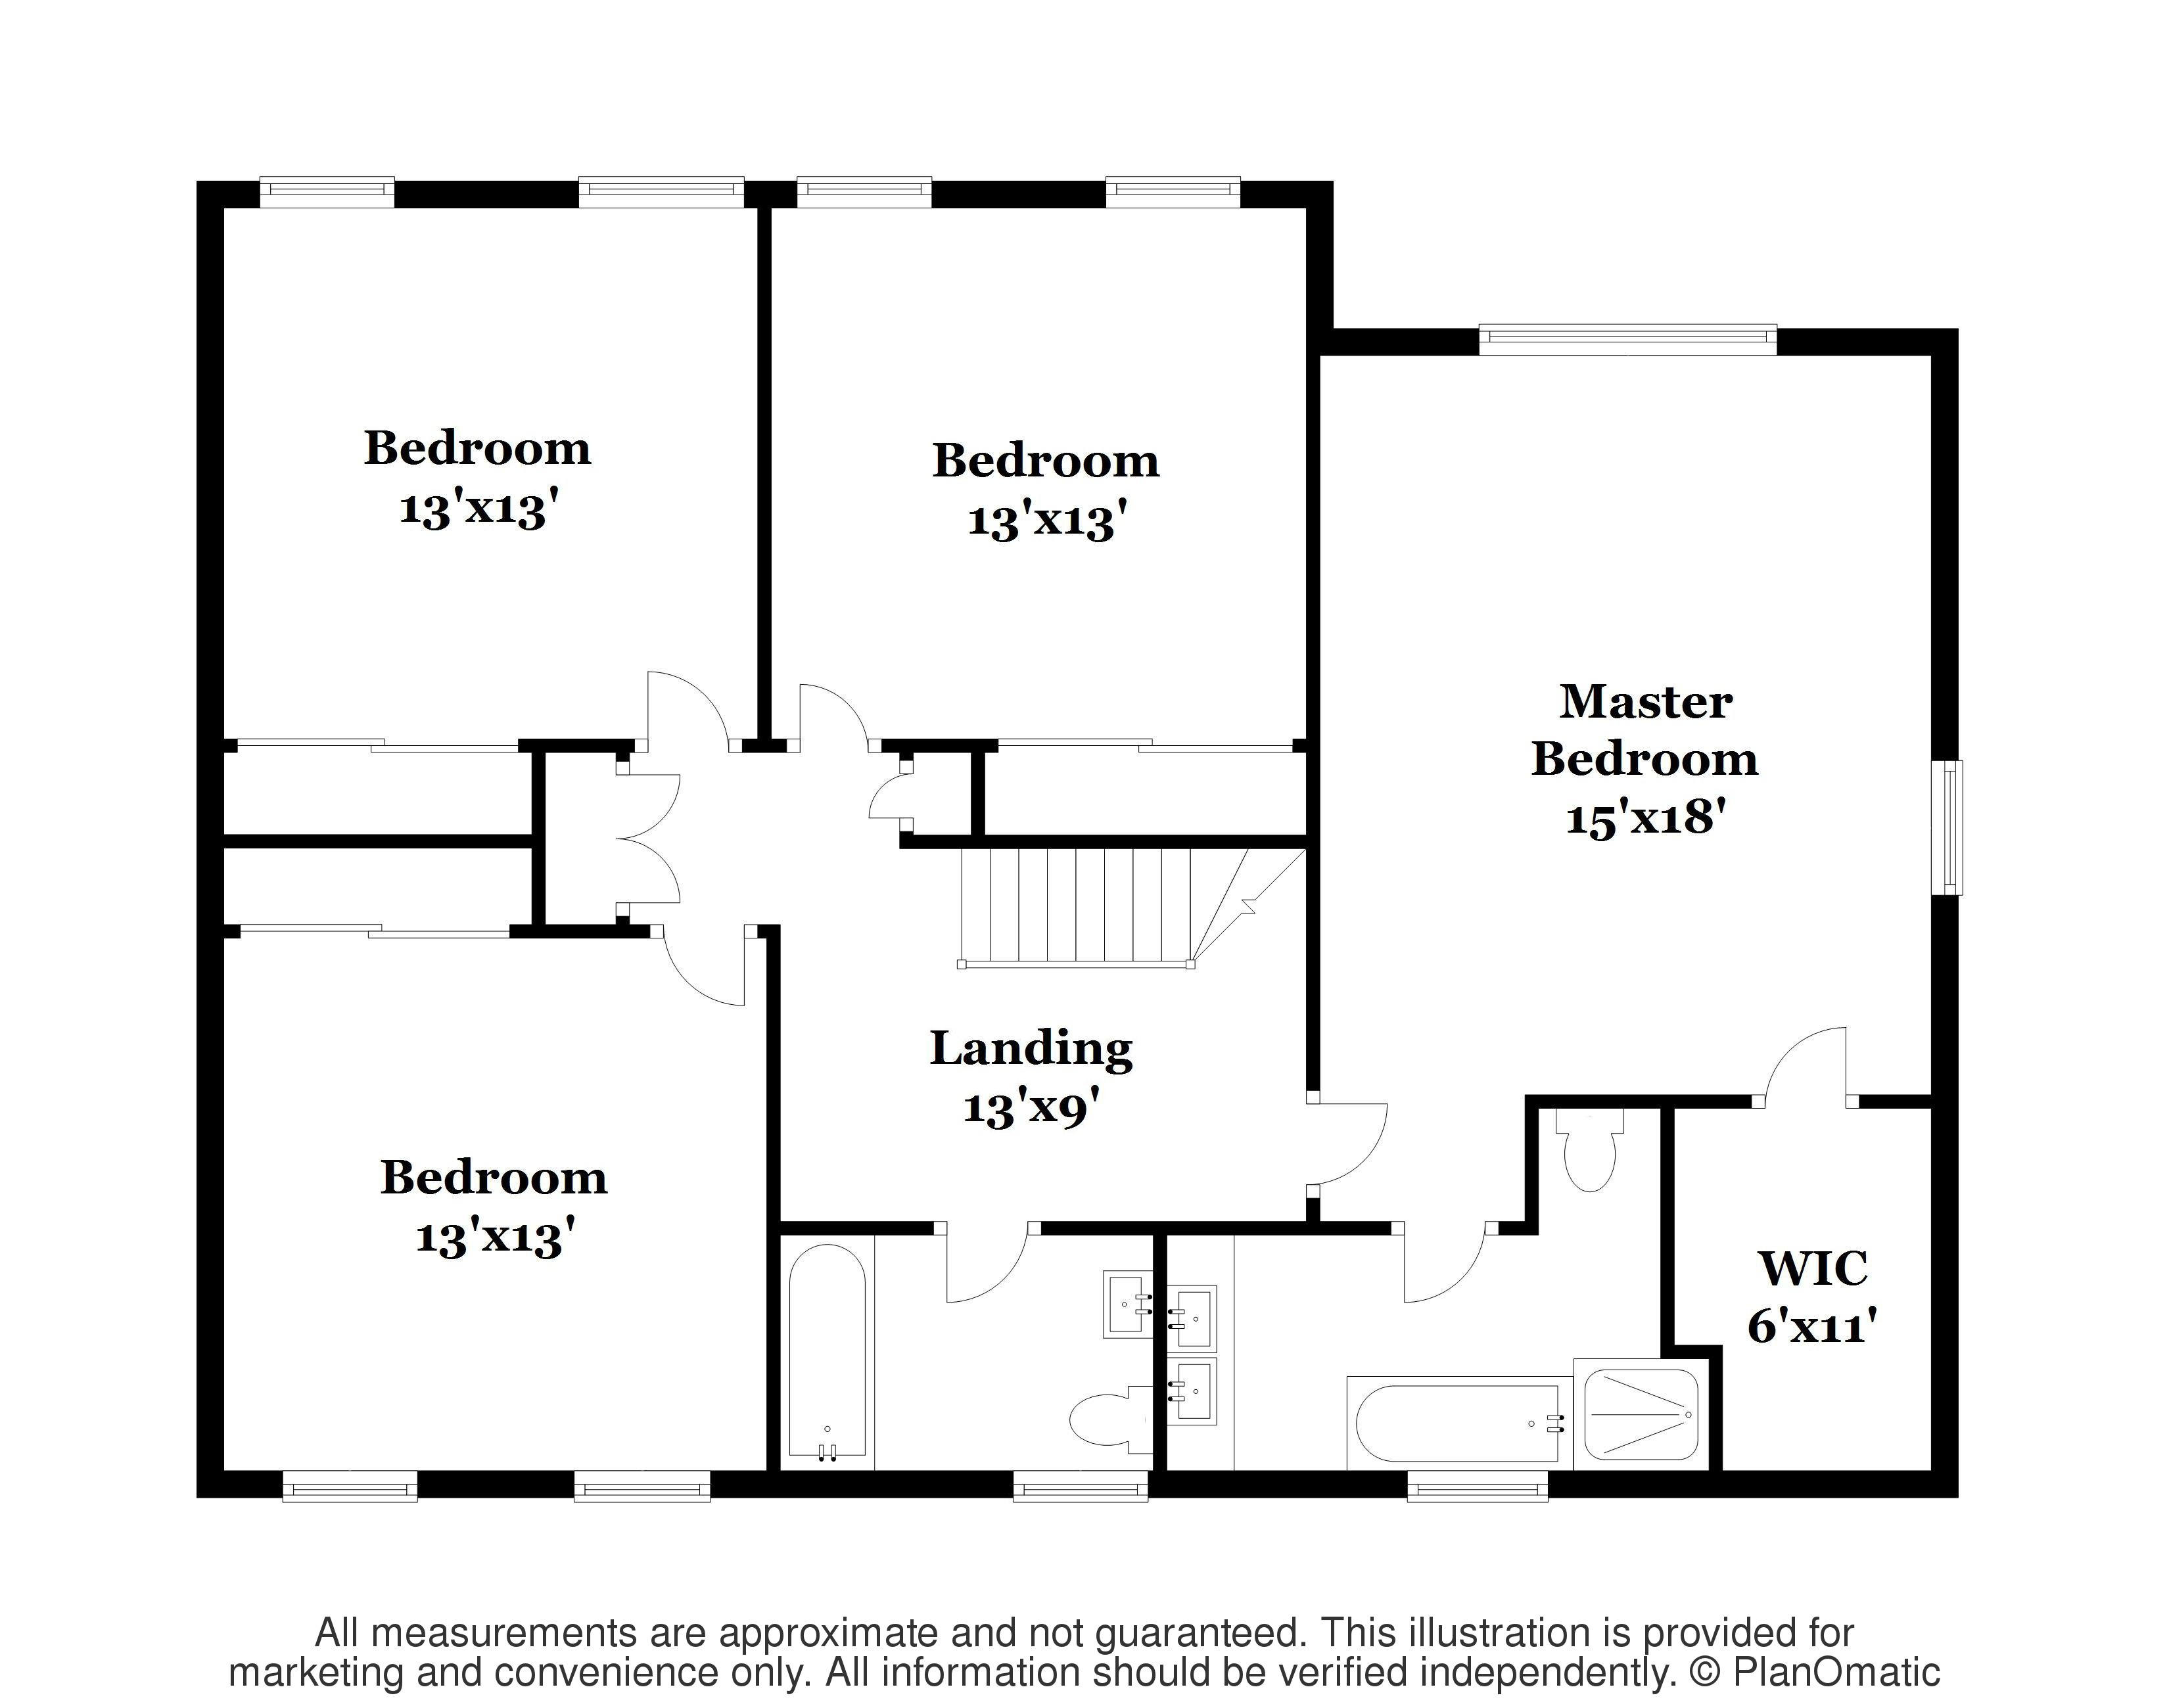 Floor Plan Image 1